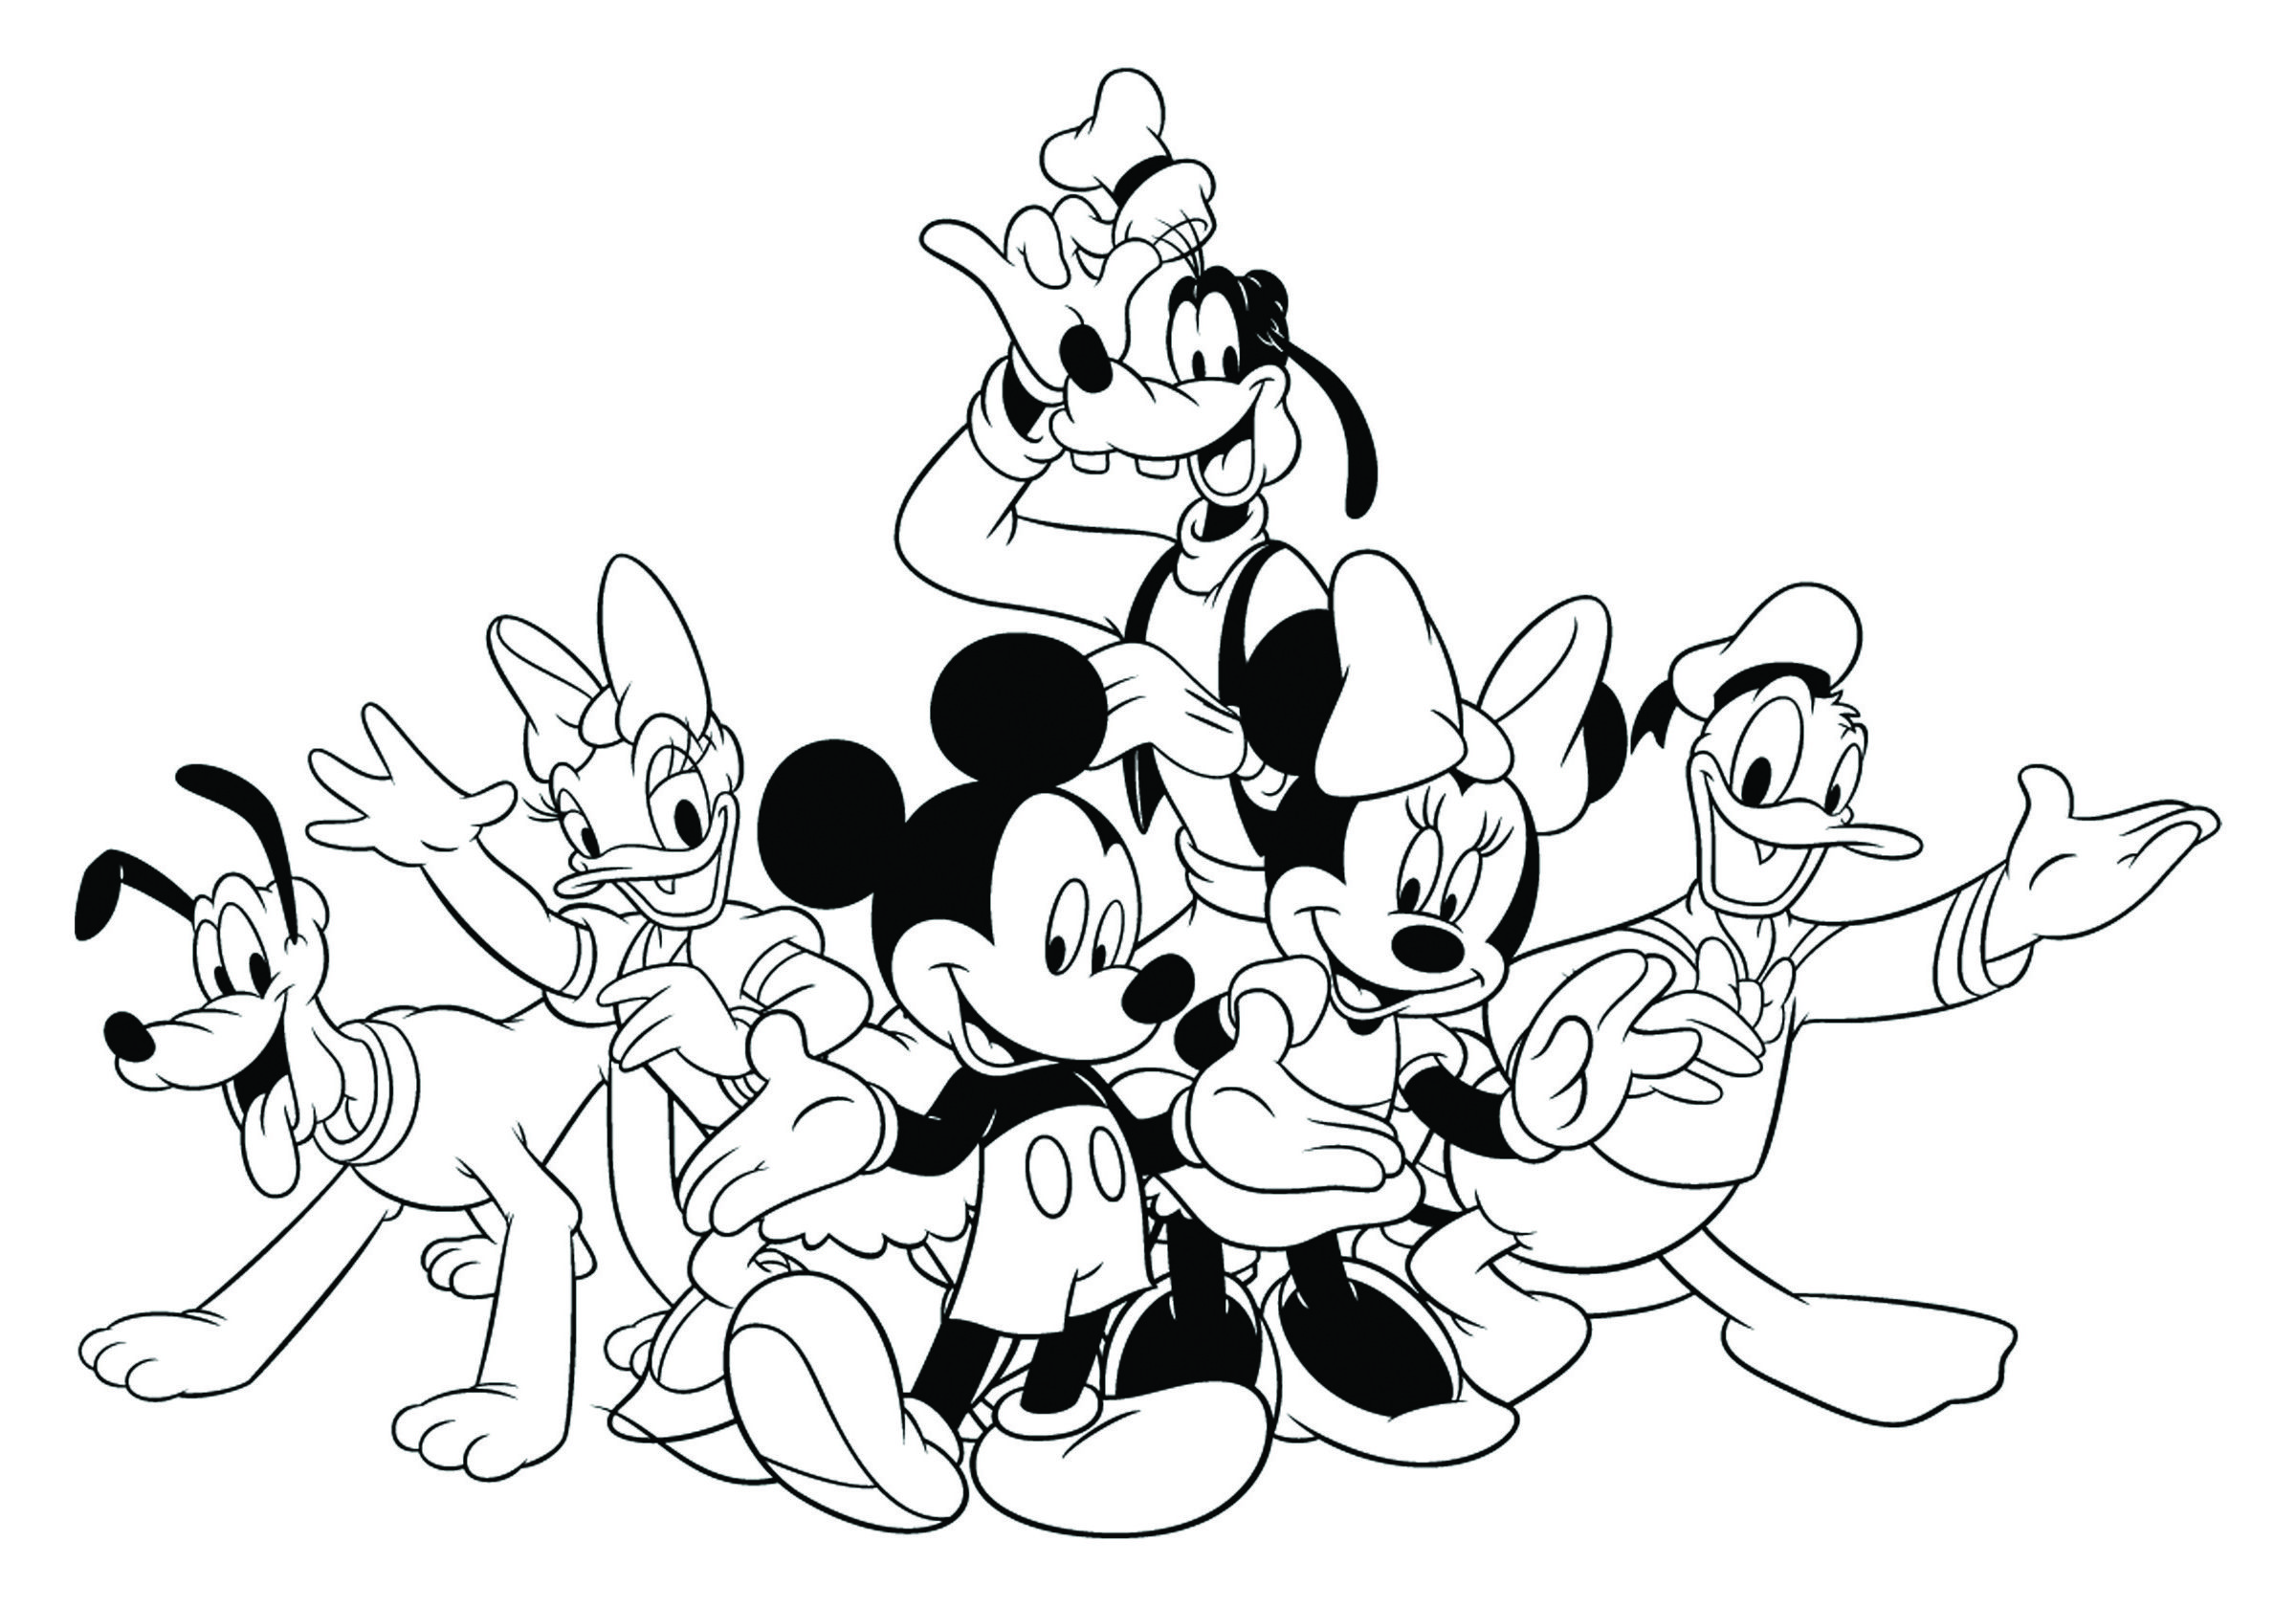 Disney mickeyus typing adventure coloring page coloring pages